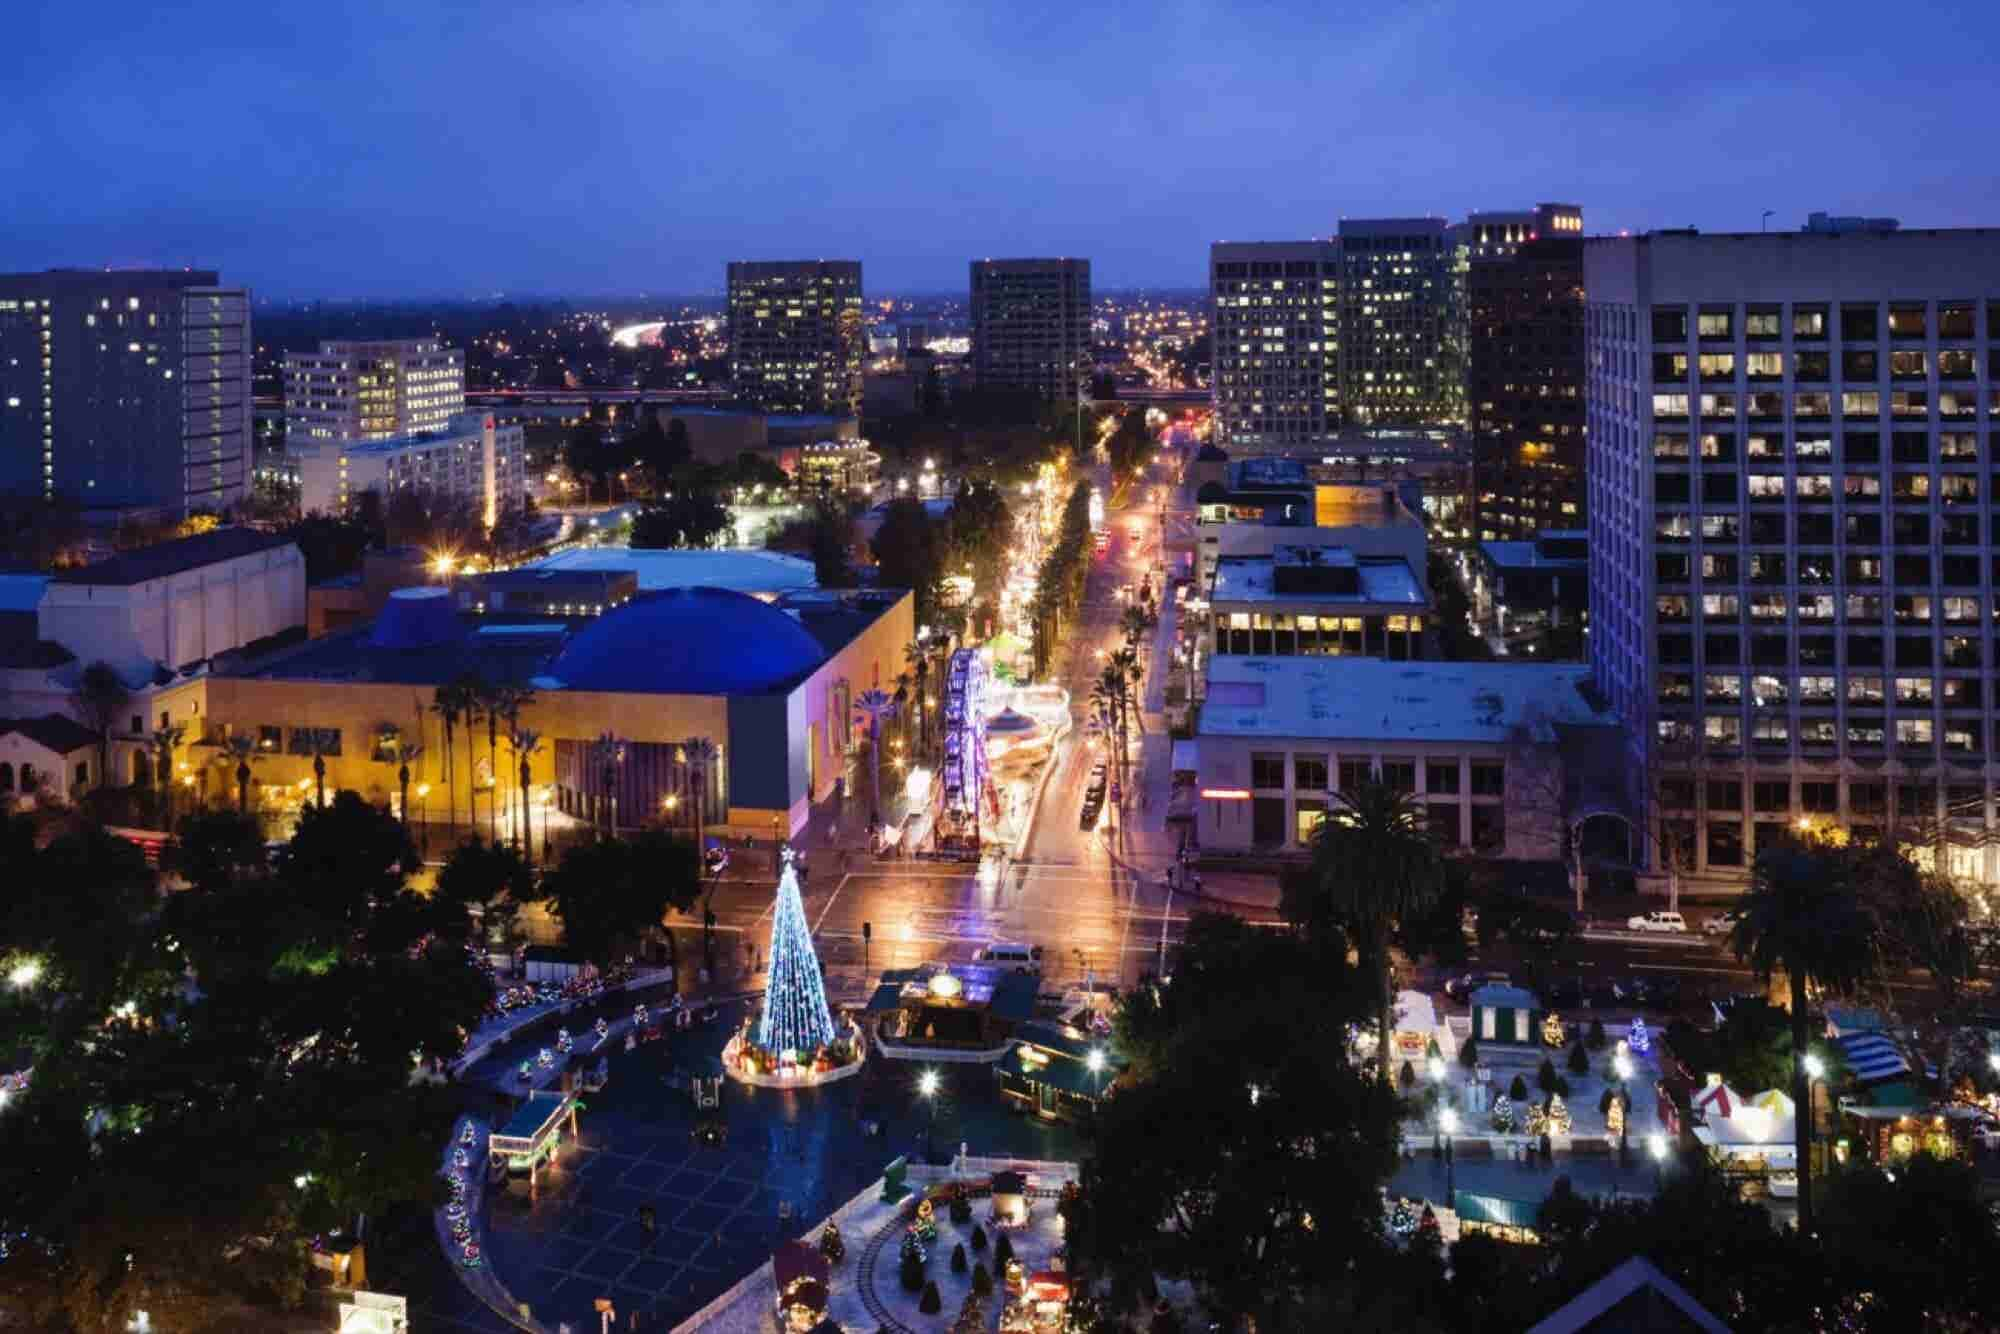 The 5 Most and 5 Least Stressed U.S. Cities